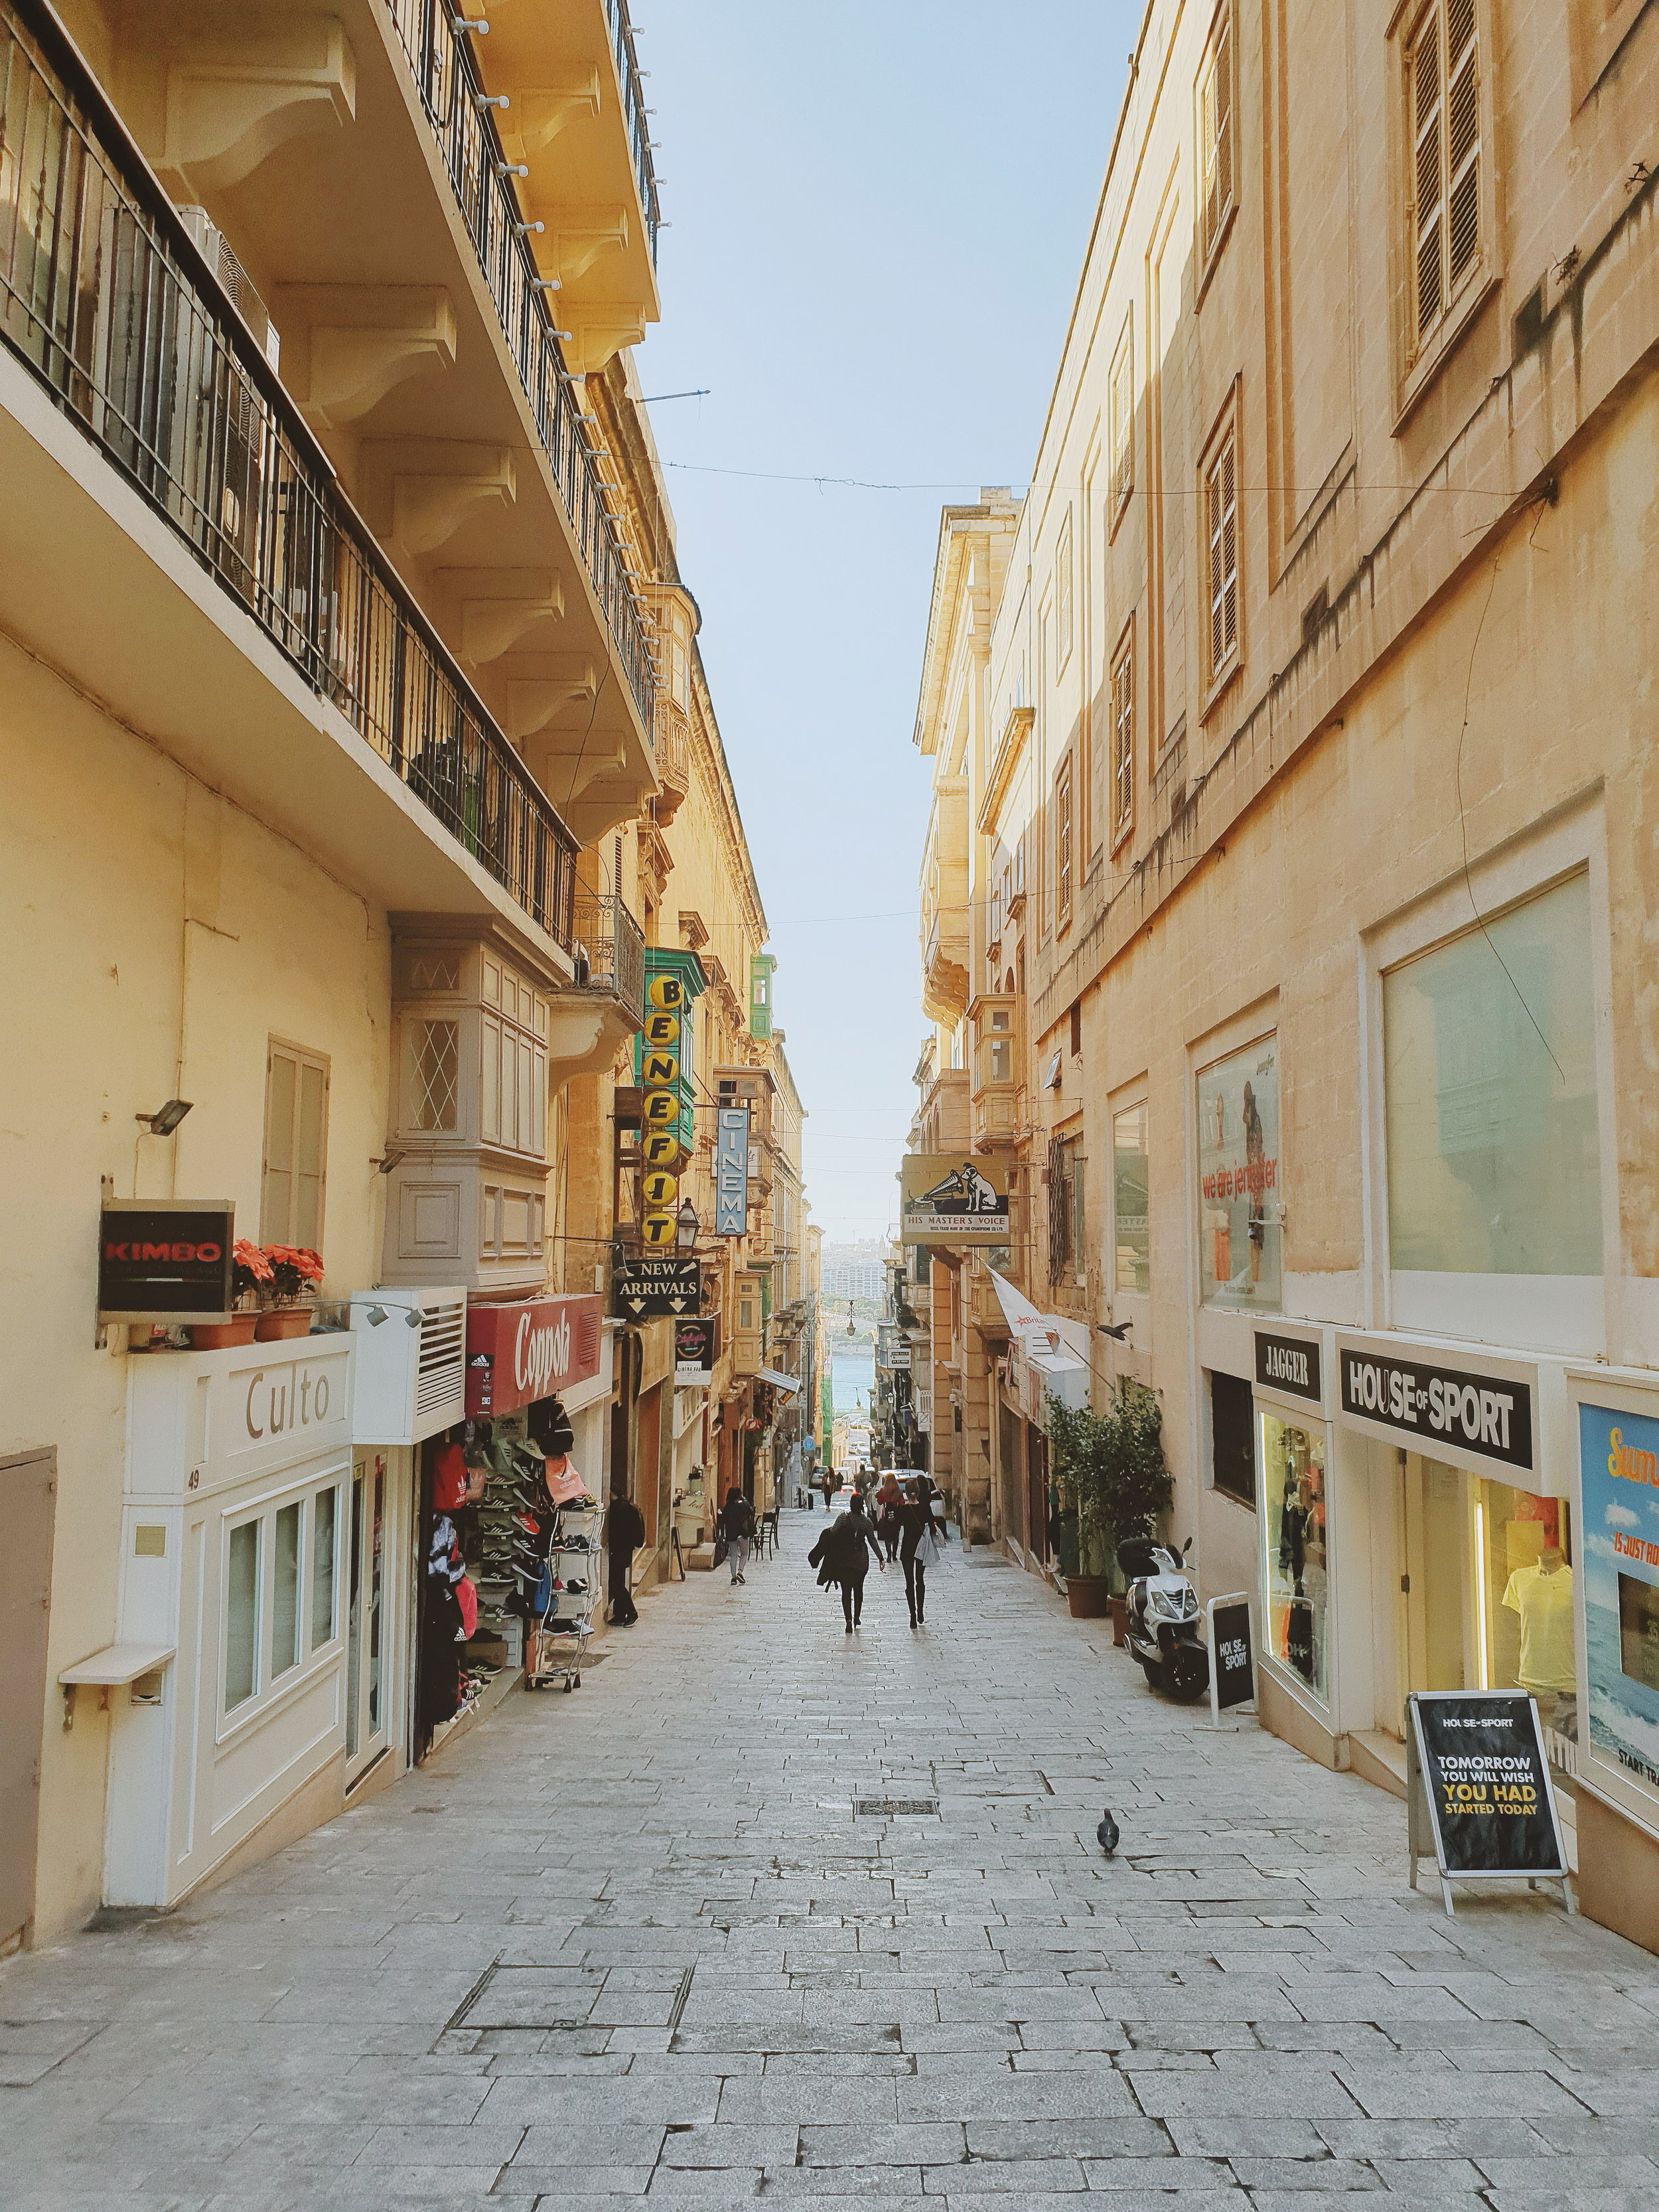 A different street in Valletta, Malta